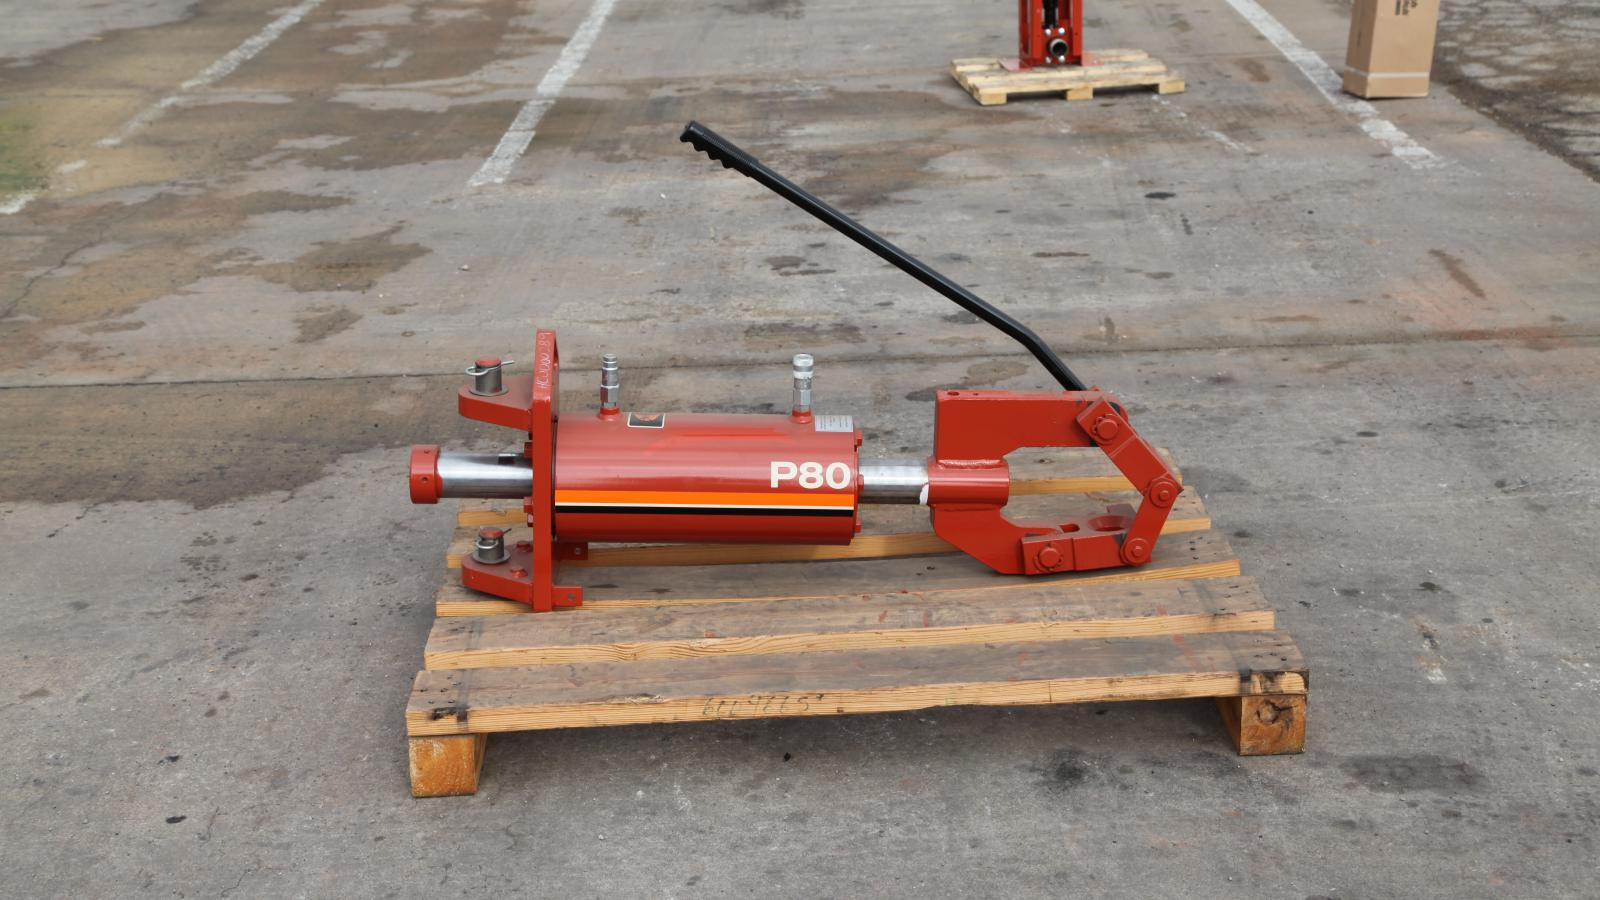 Ditch Witch P80 Rod Pushers